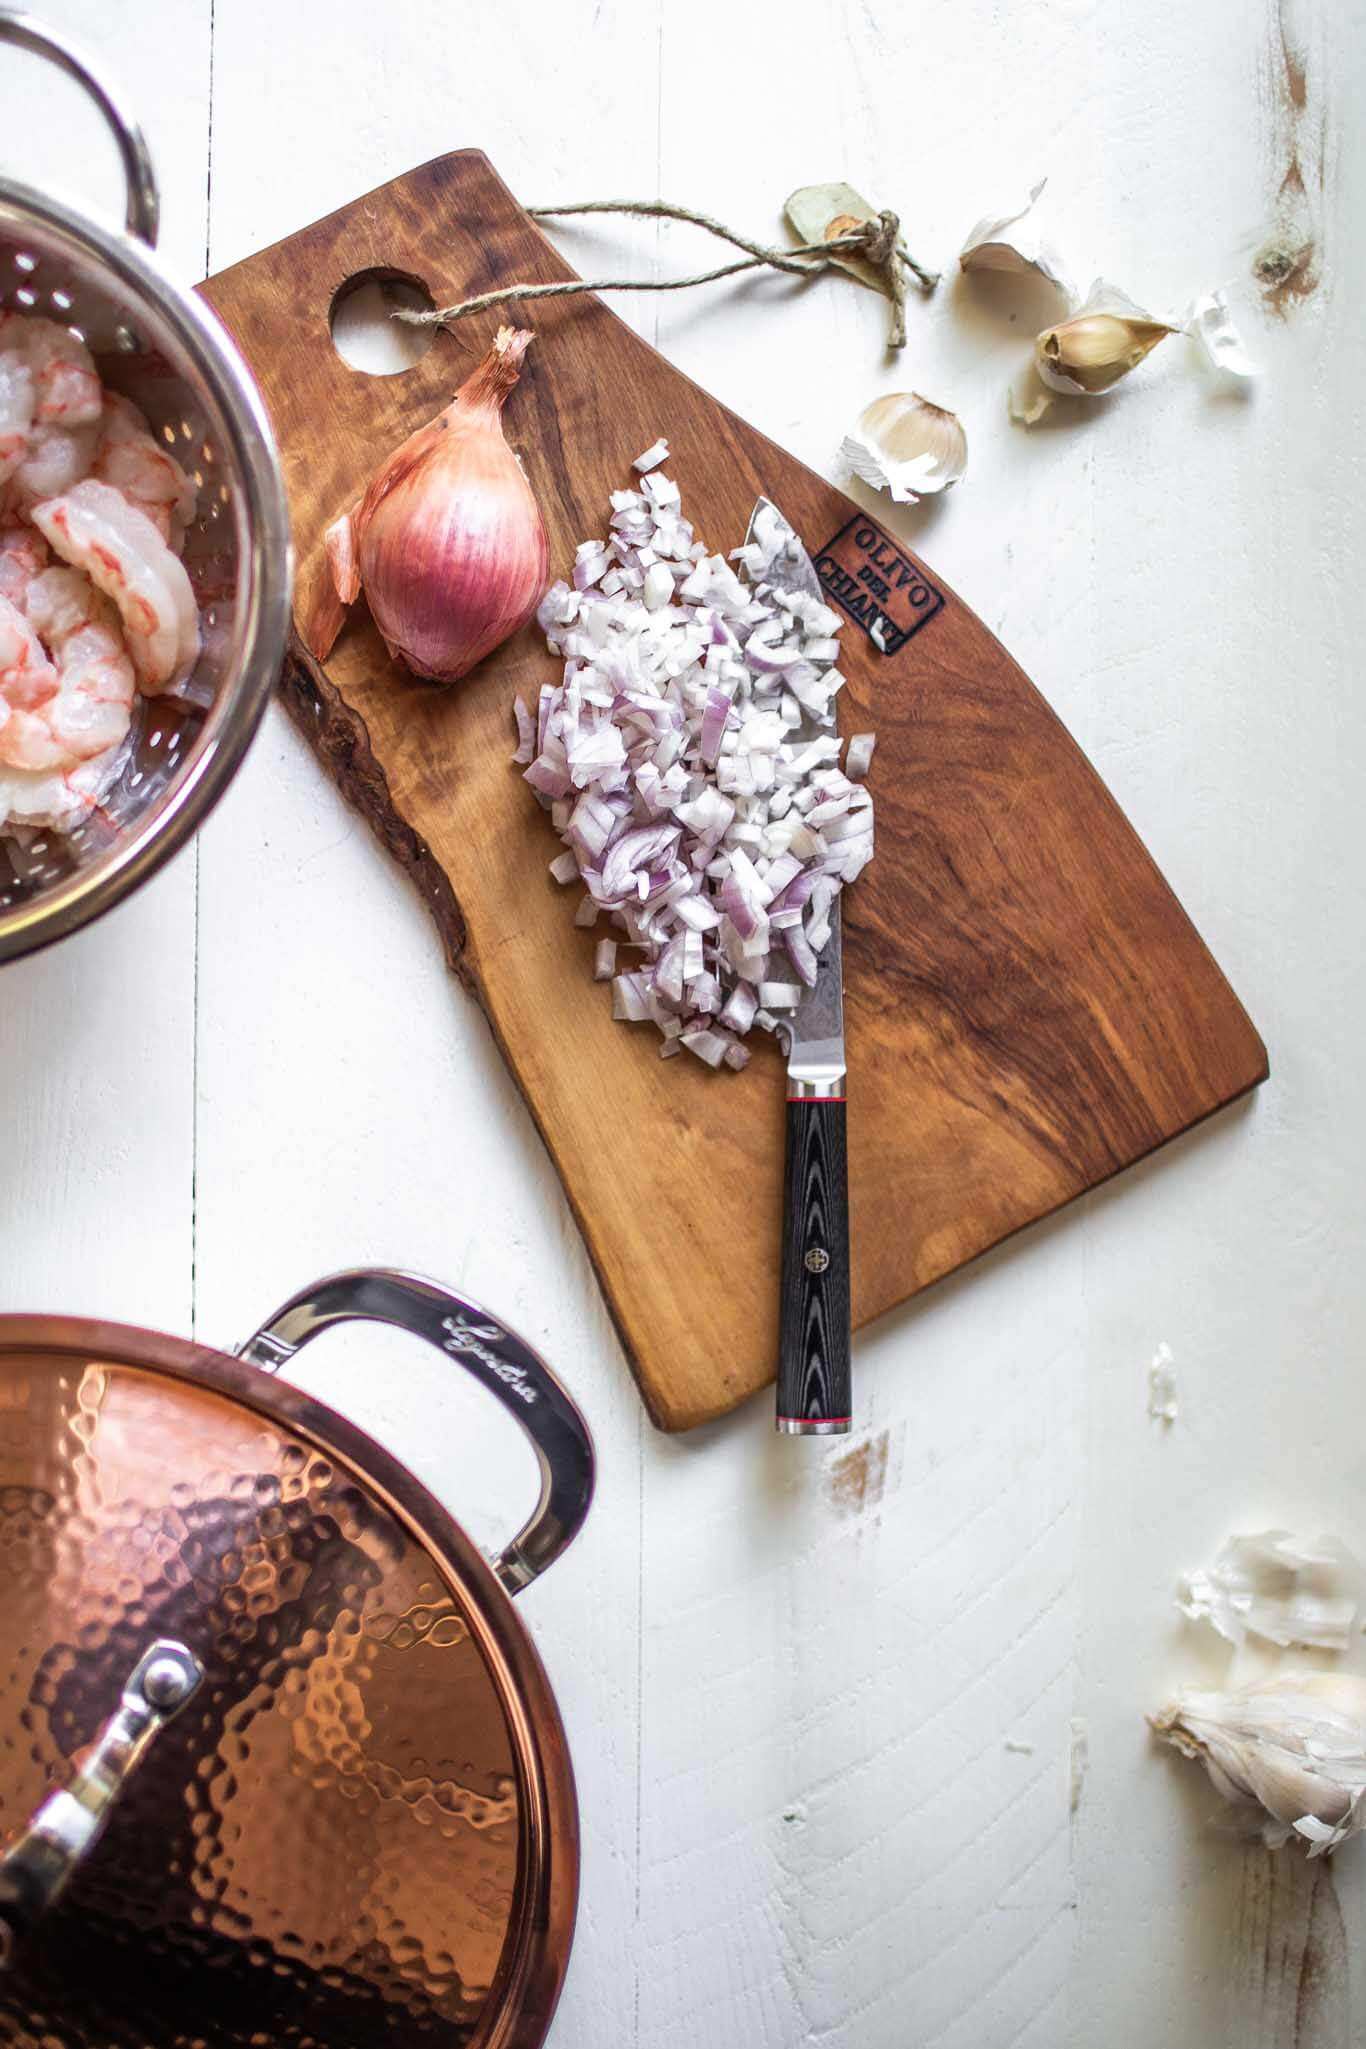 Ingredients for shrimp risotto.